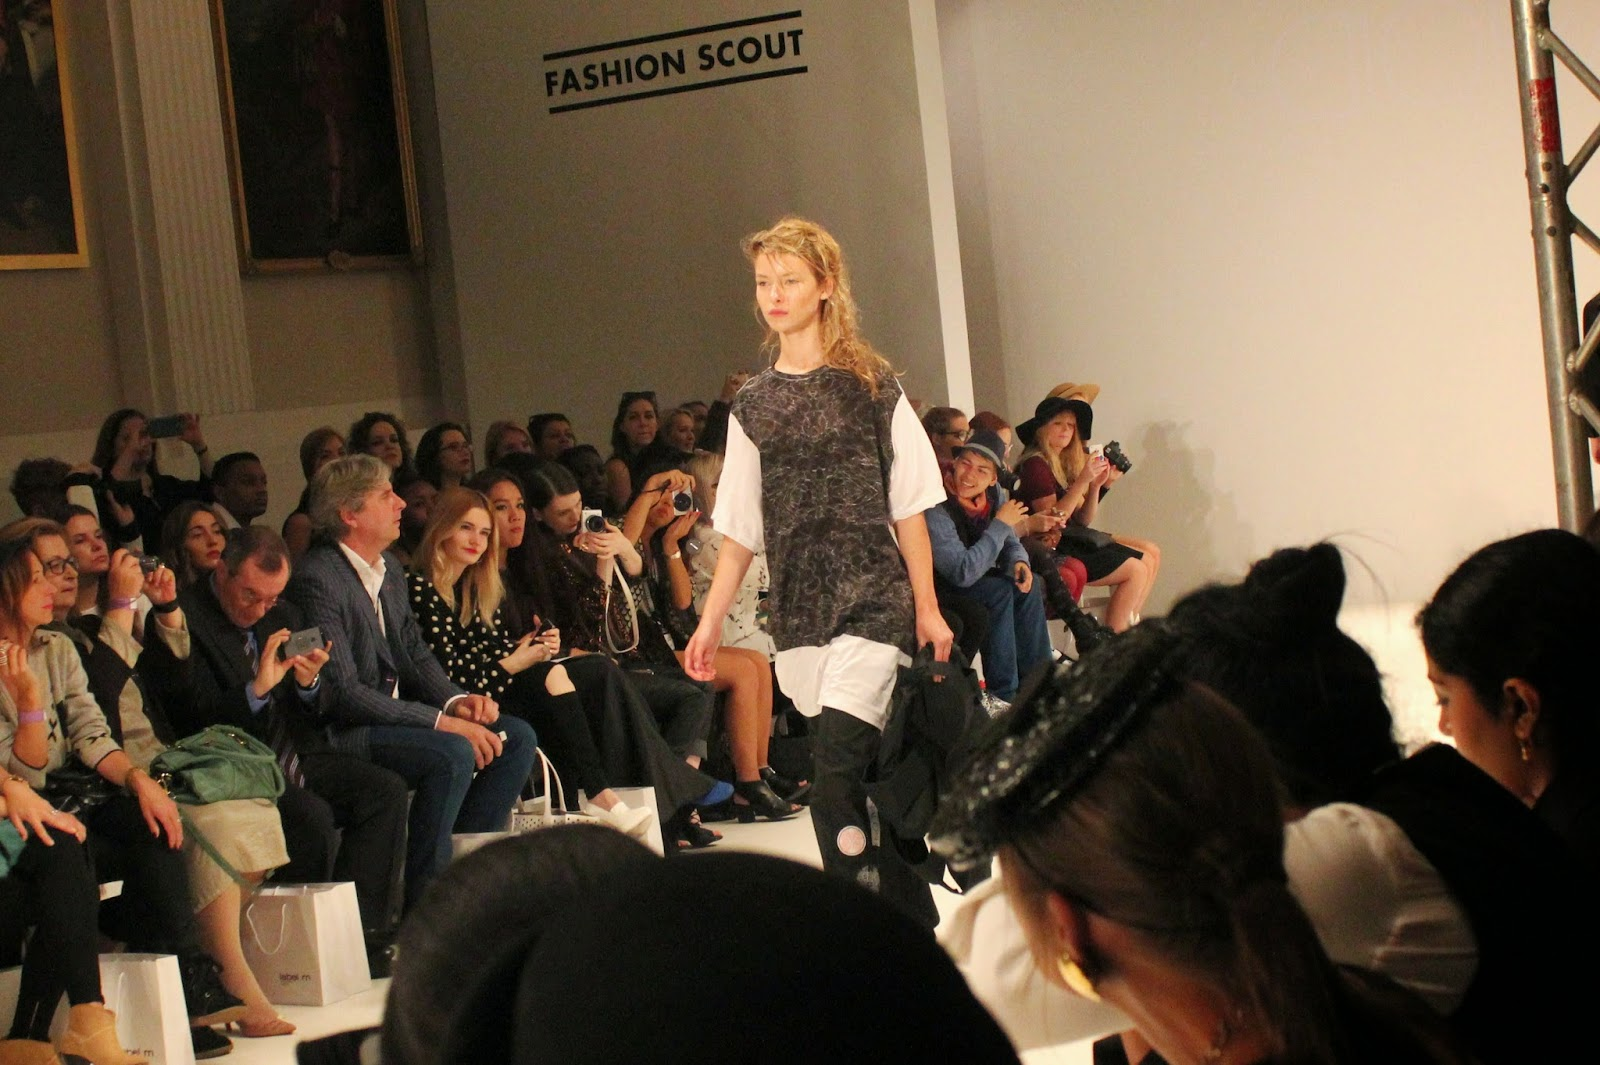 london-fashion-week-2014-lfw-spring-summer-2015-blogger-fashion-Dioralop-catwalk-models-freemasons hall-fashion-scout-top-trousers-shoes